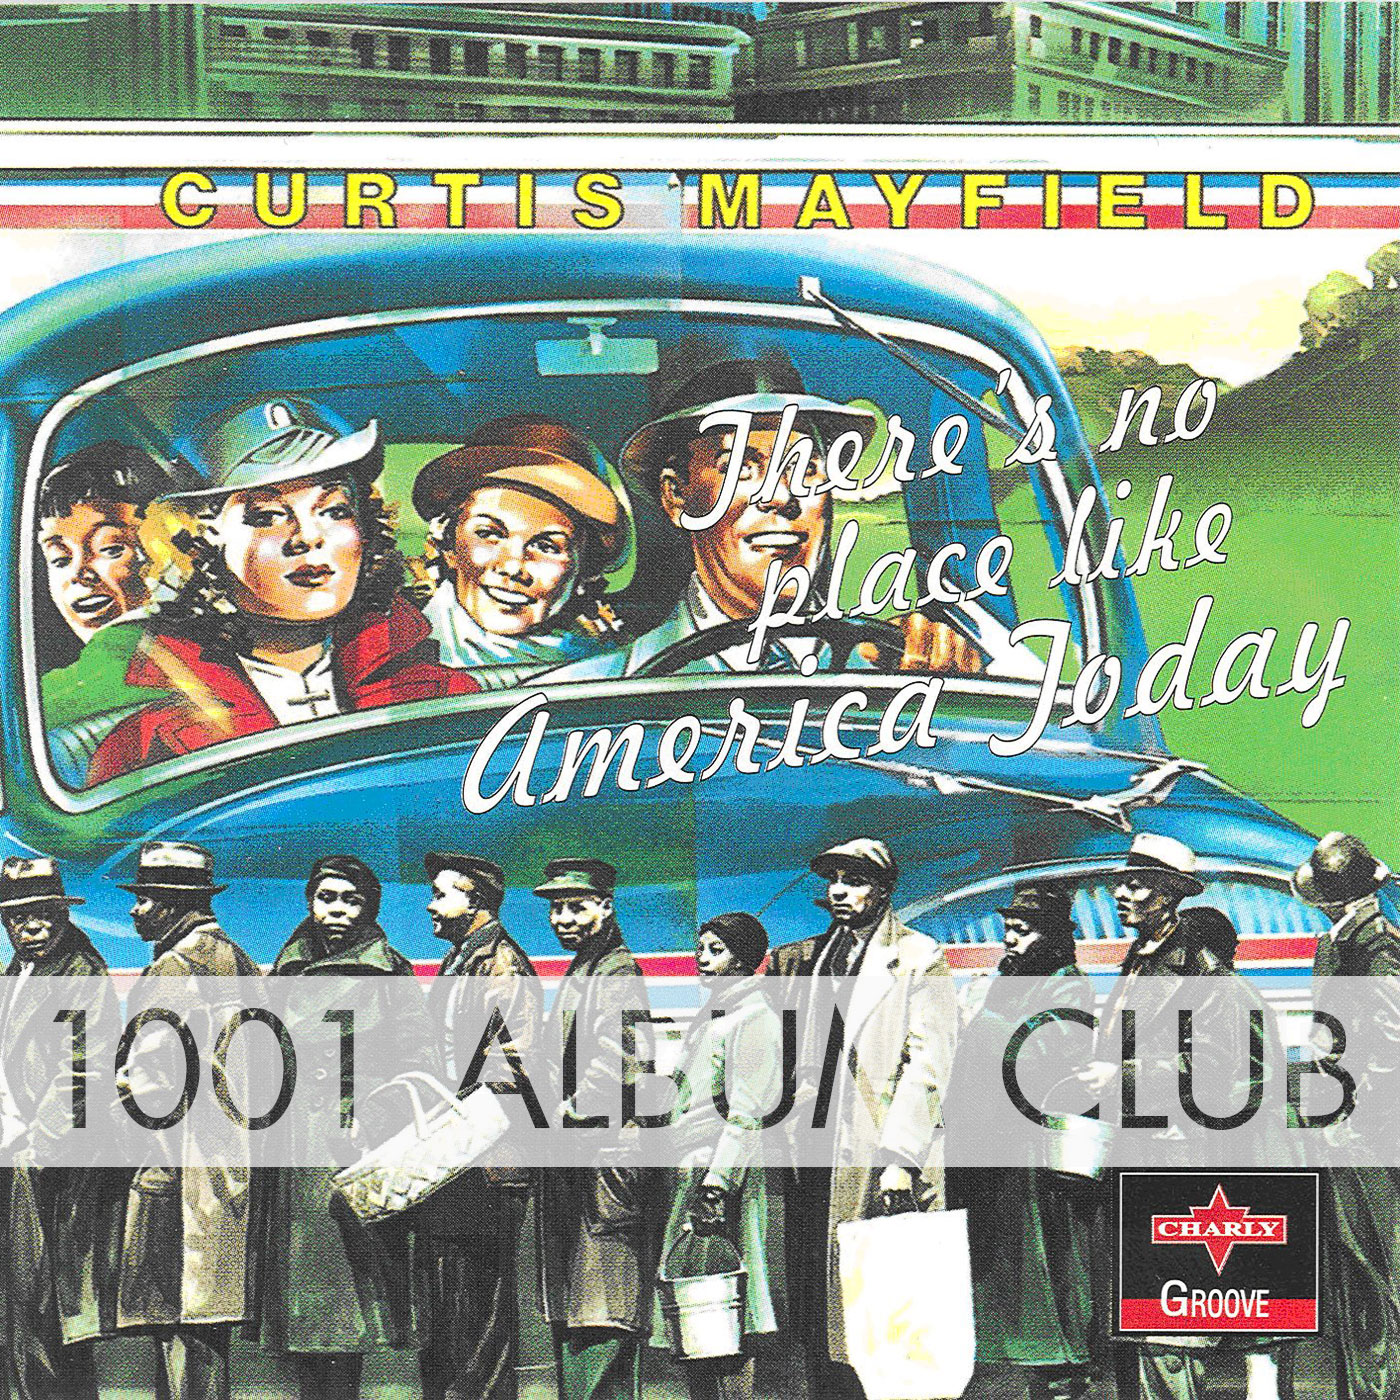 348 Curtis Mayfield - There's No Place Like America Today